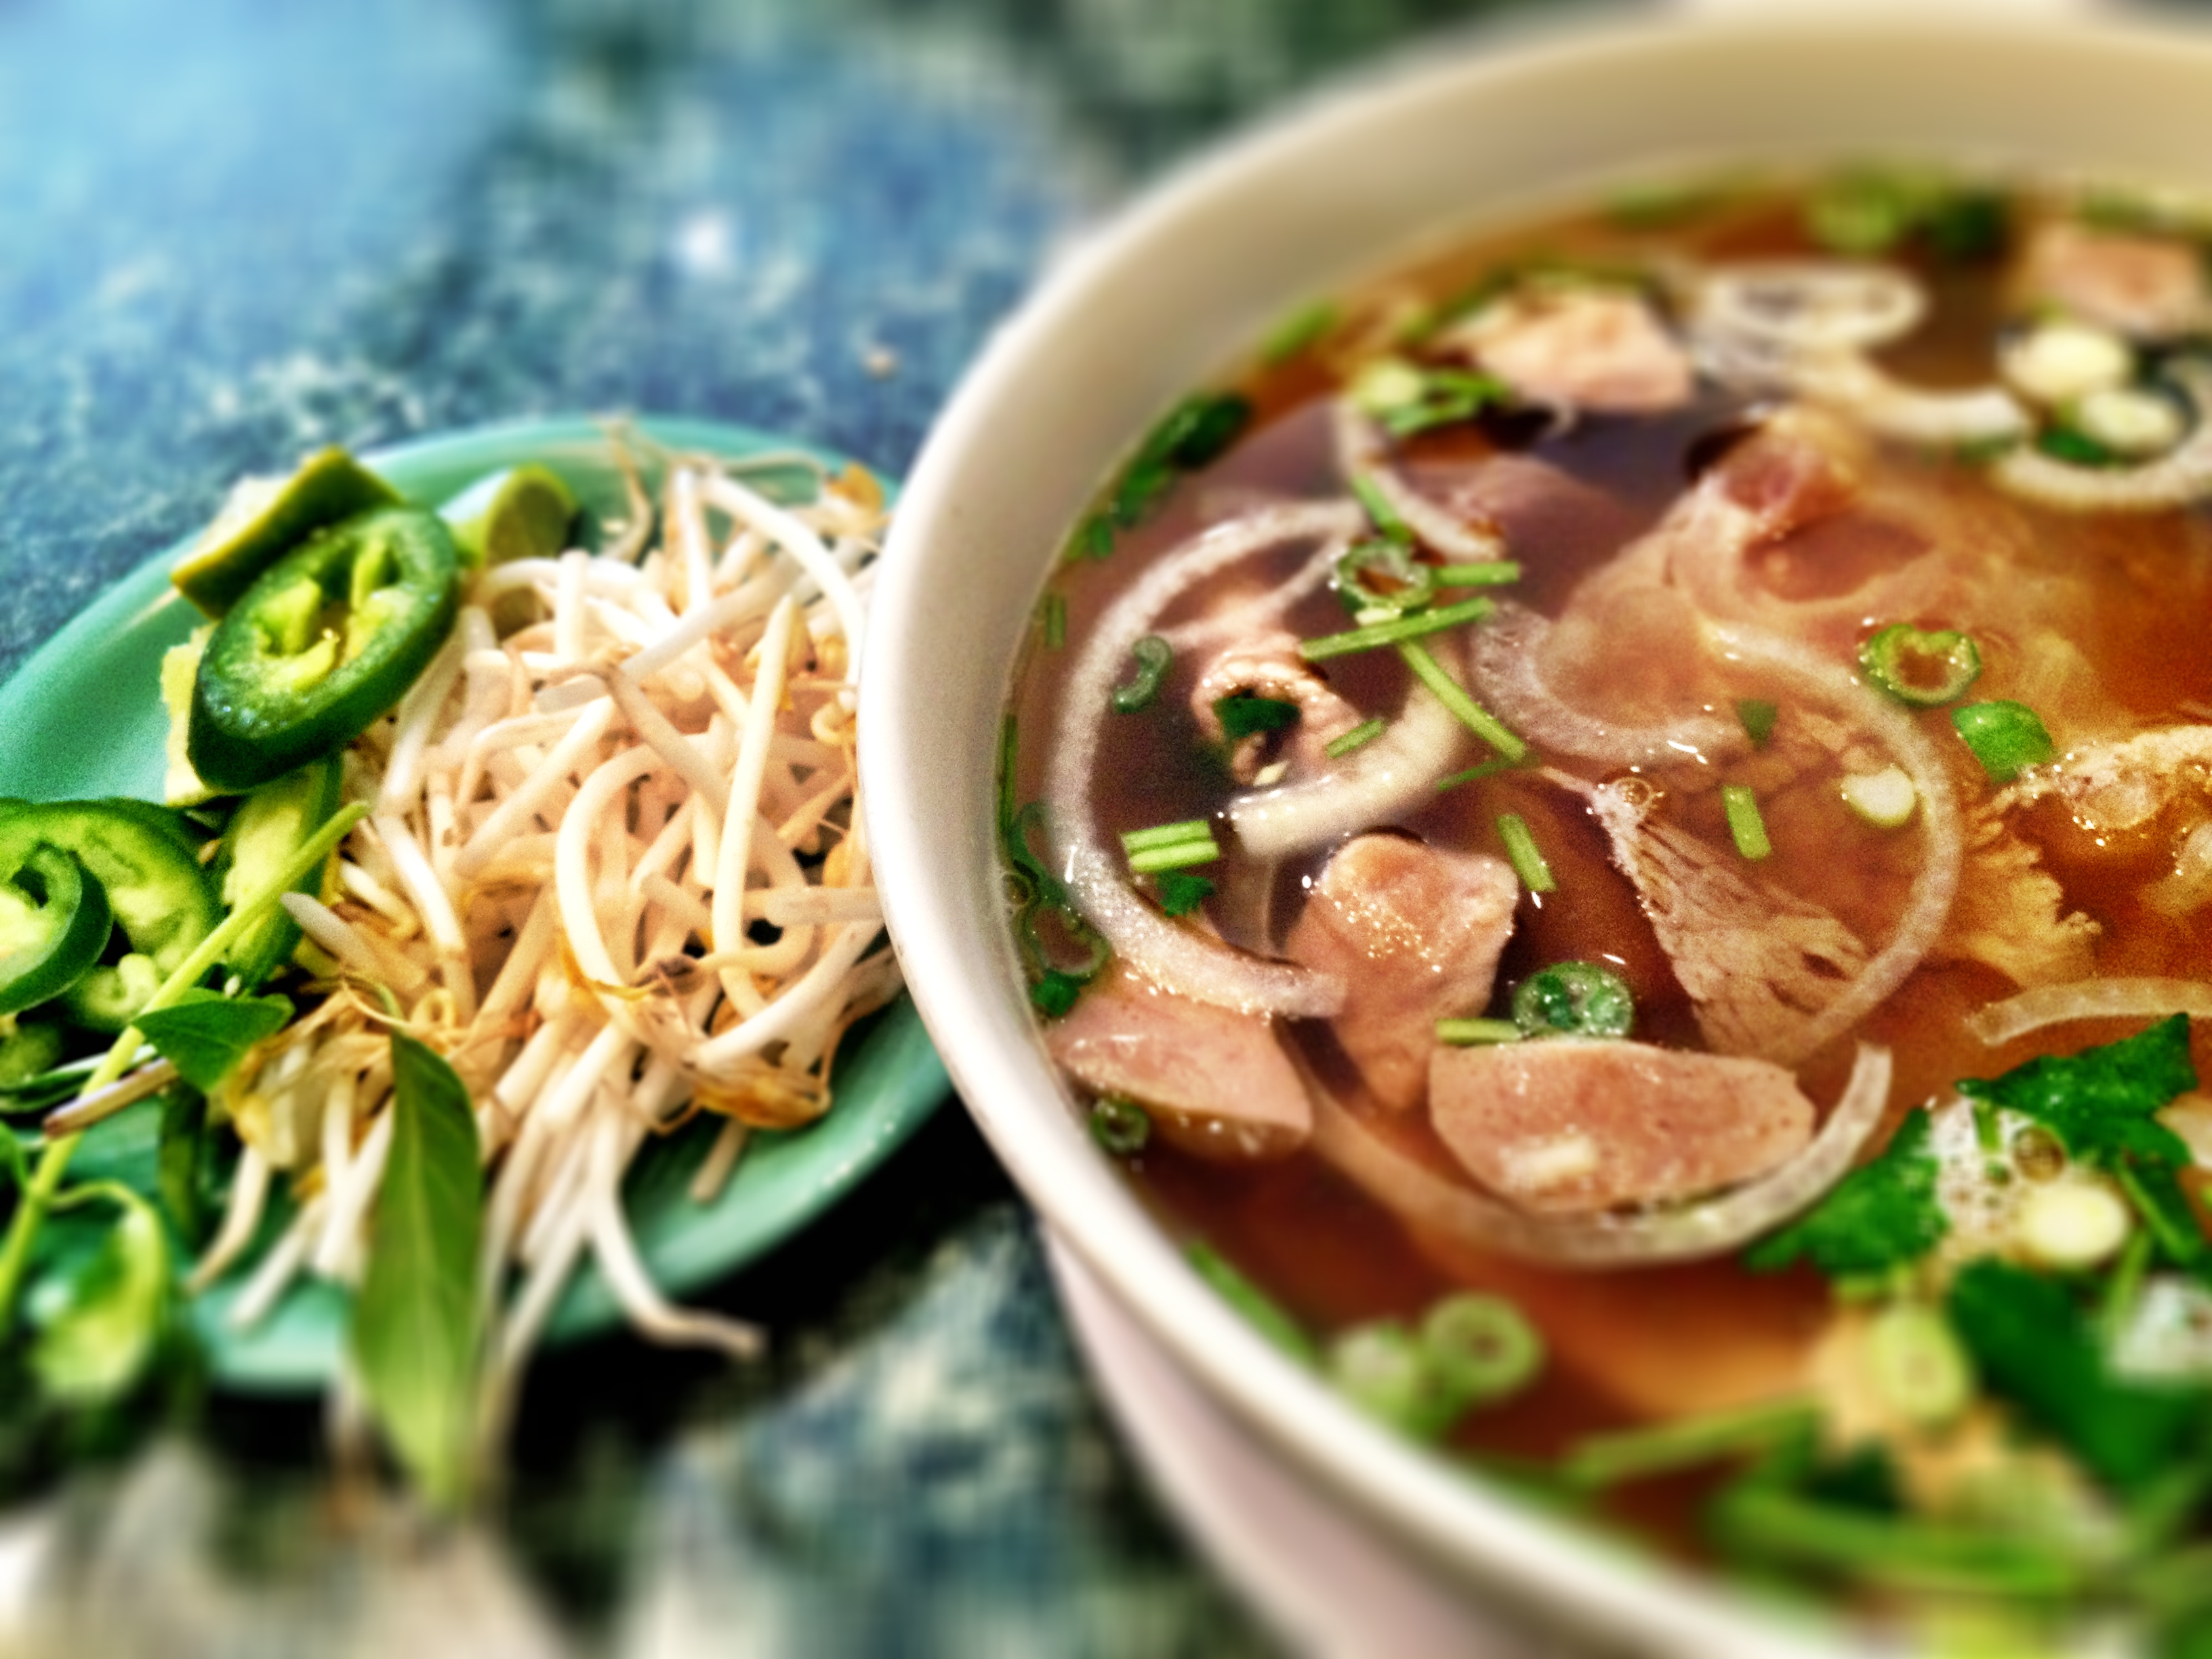 Vietnamese food sale our lady of the blessed sacrament - Vietnamese cuisine pho ...